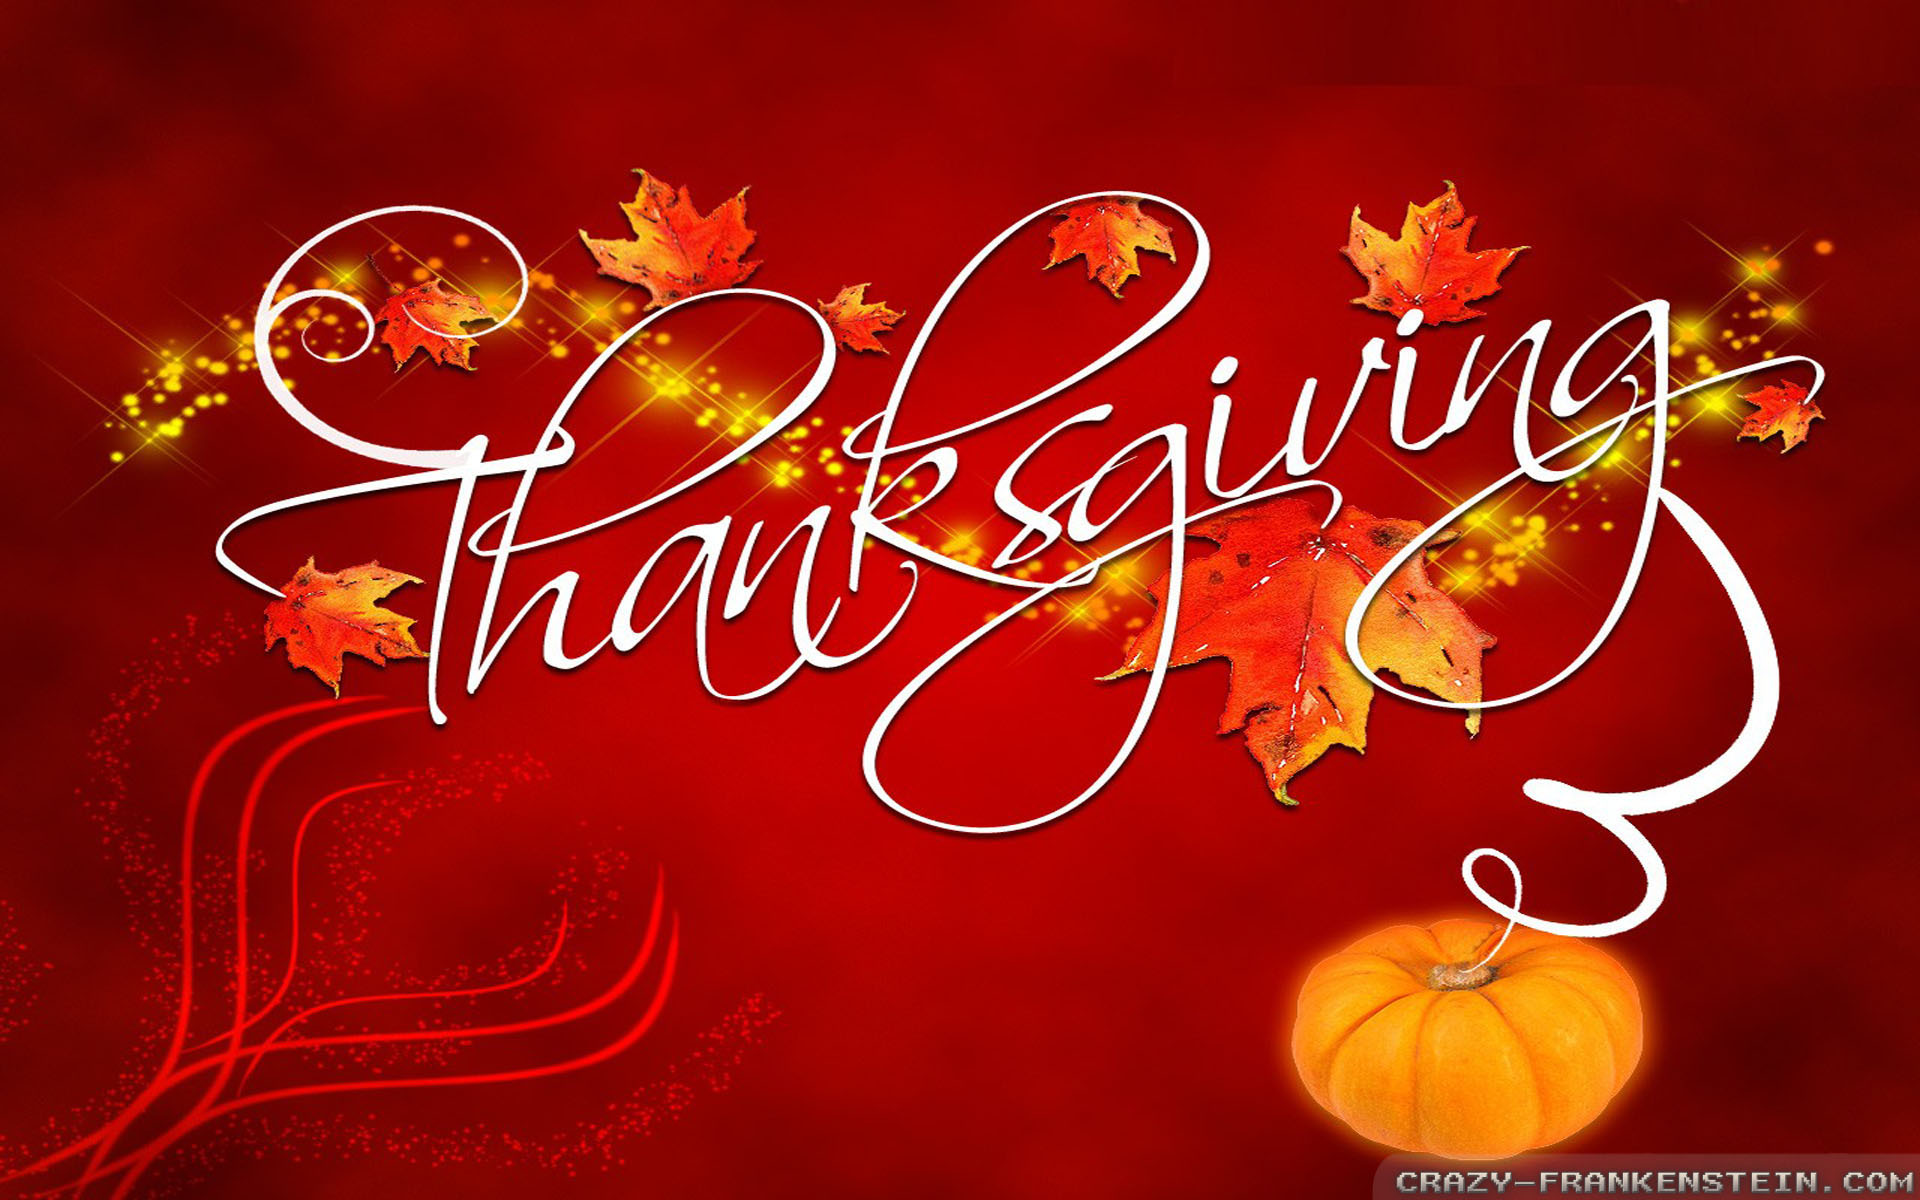 Thanksgiving Wallpaper - Wallpapers Browse